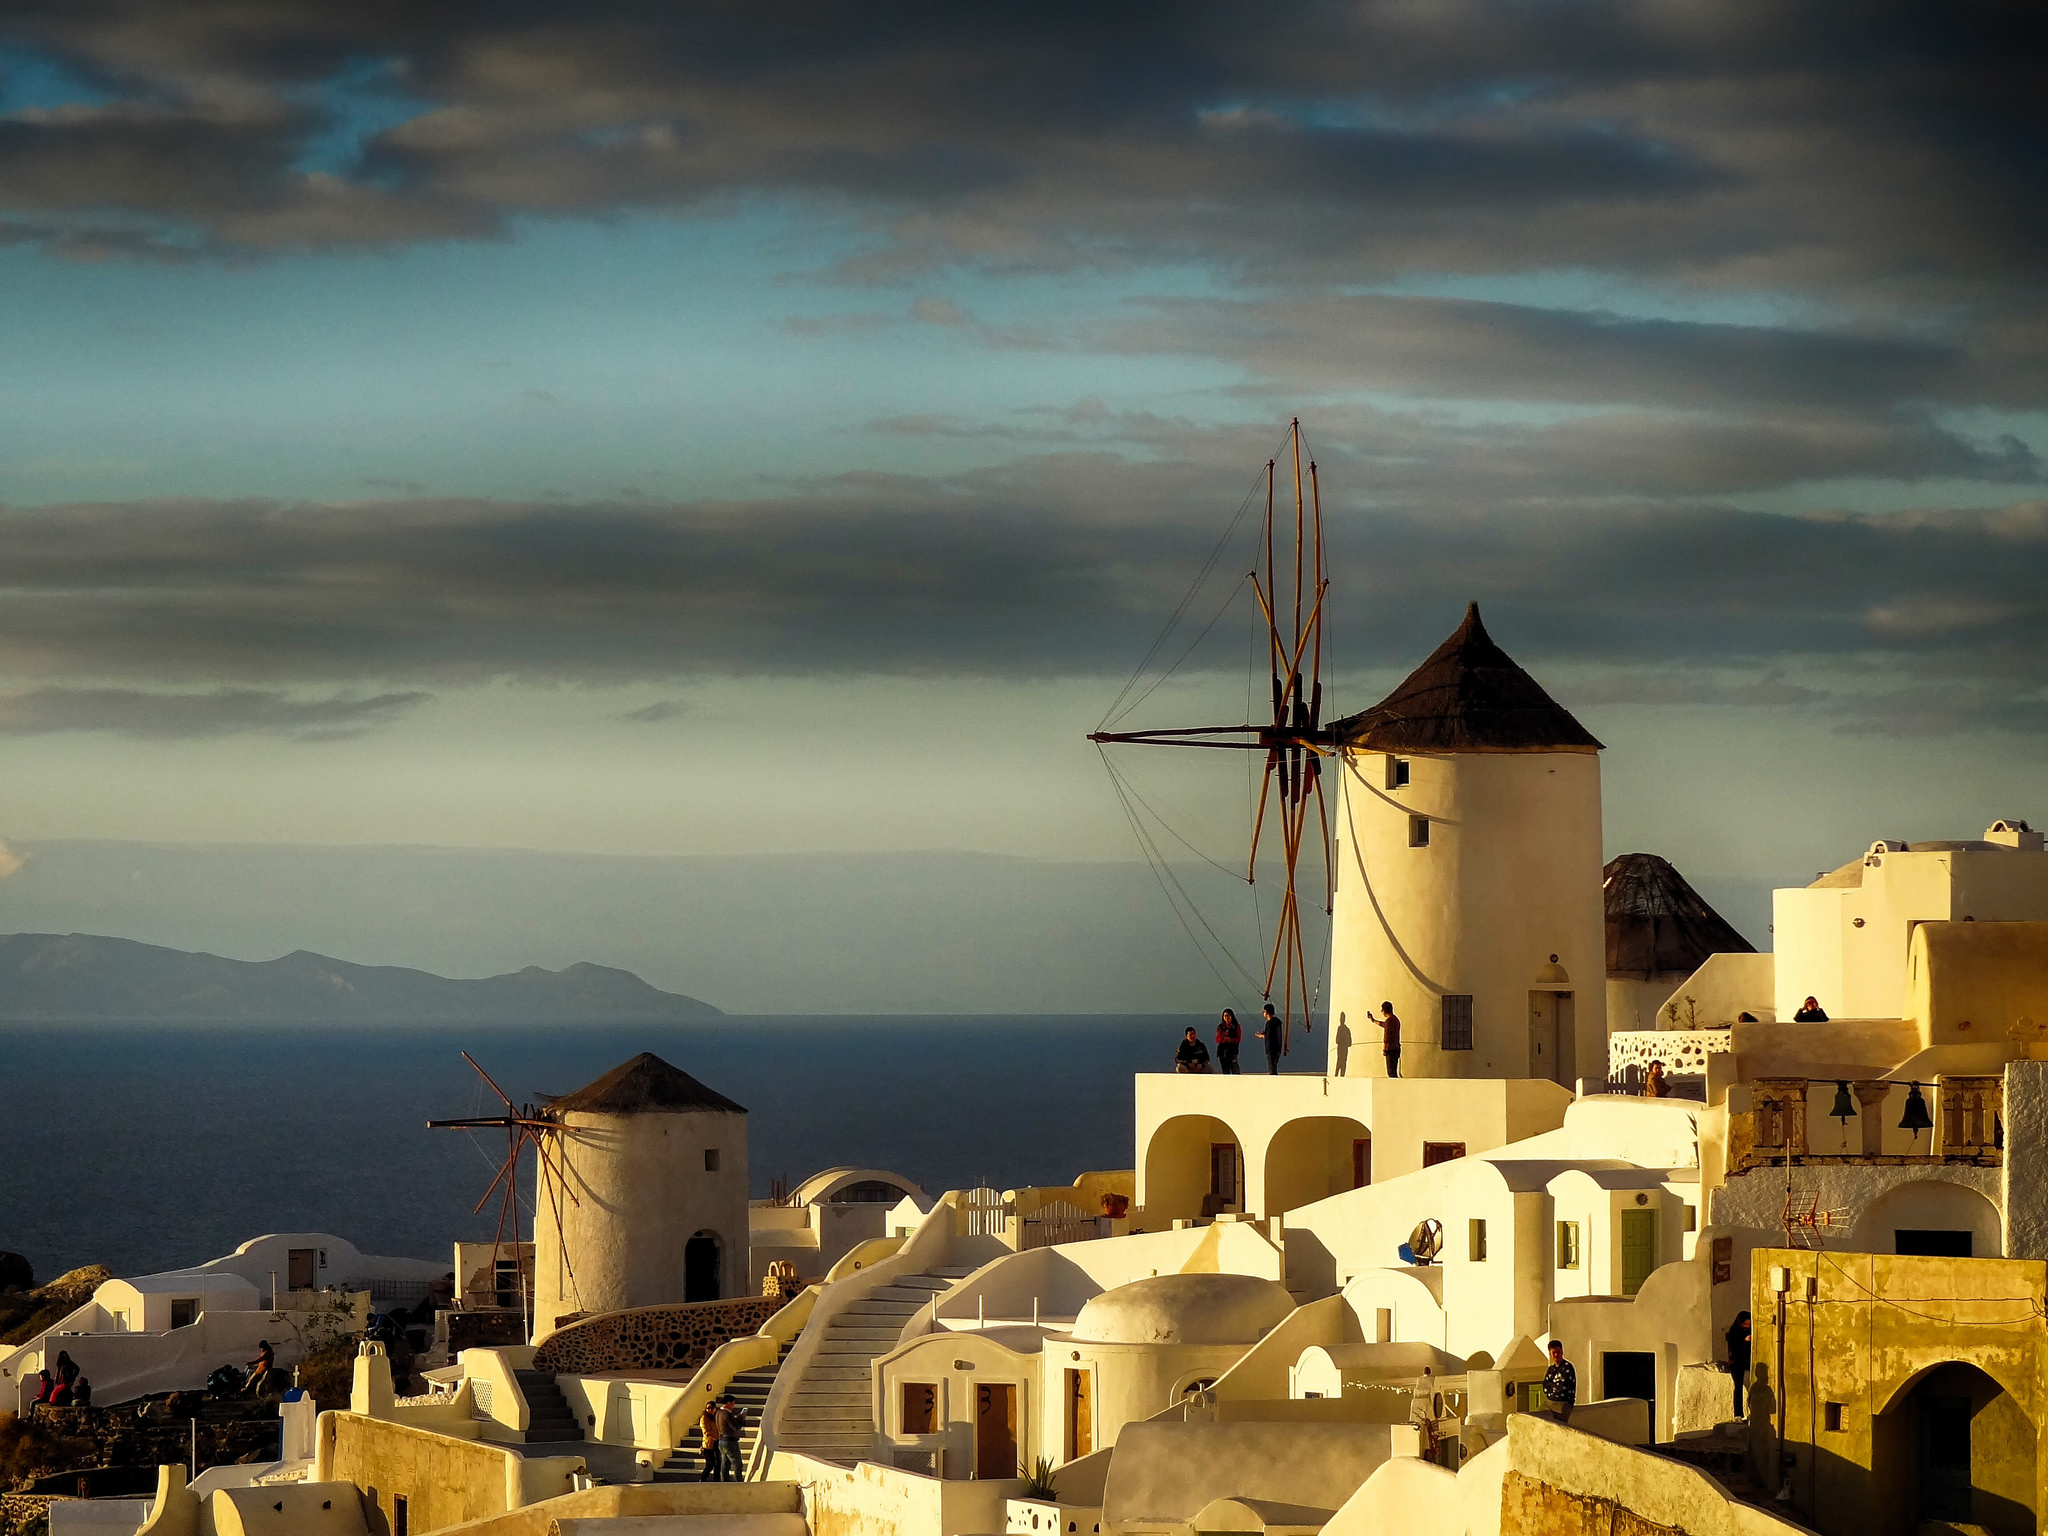 A Windmill in Santorini